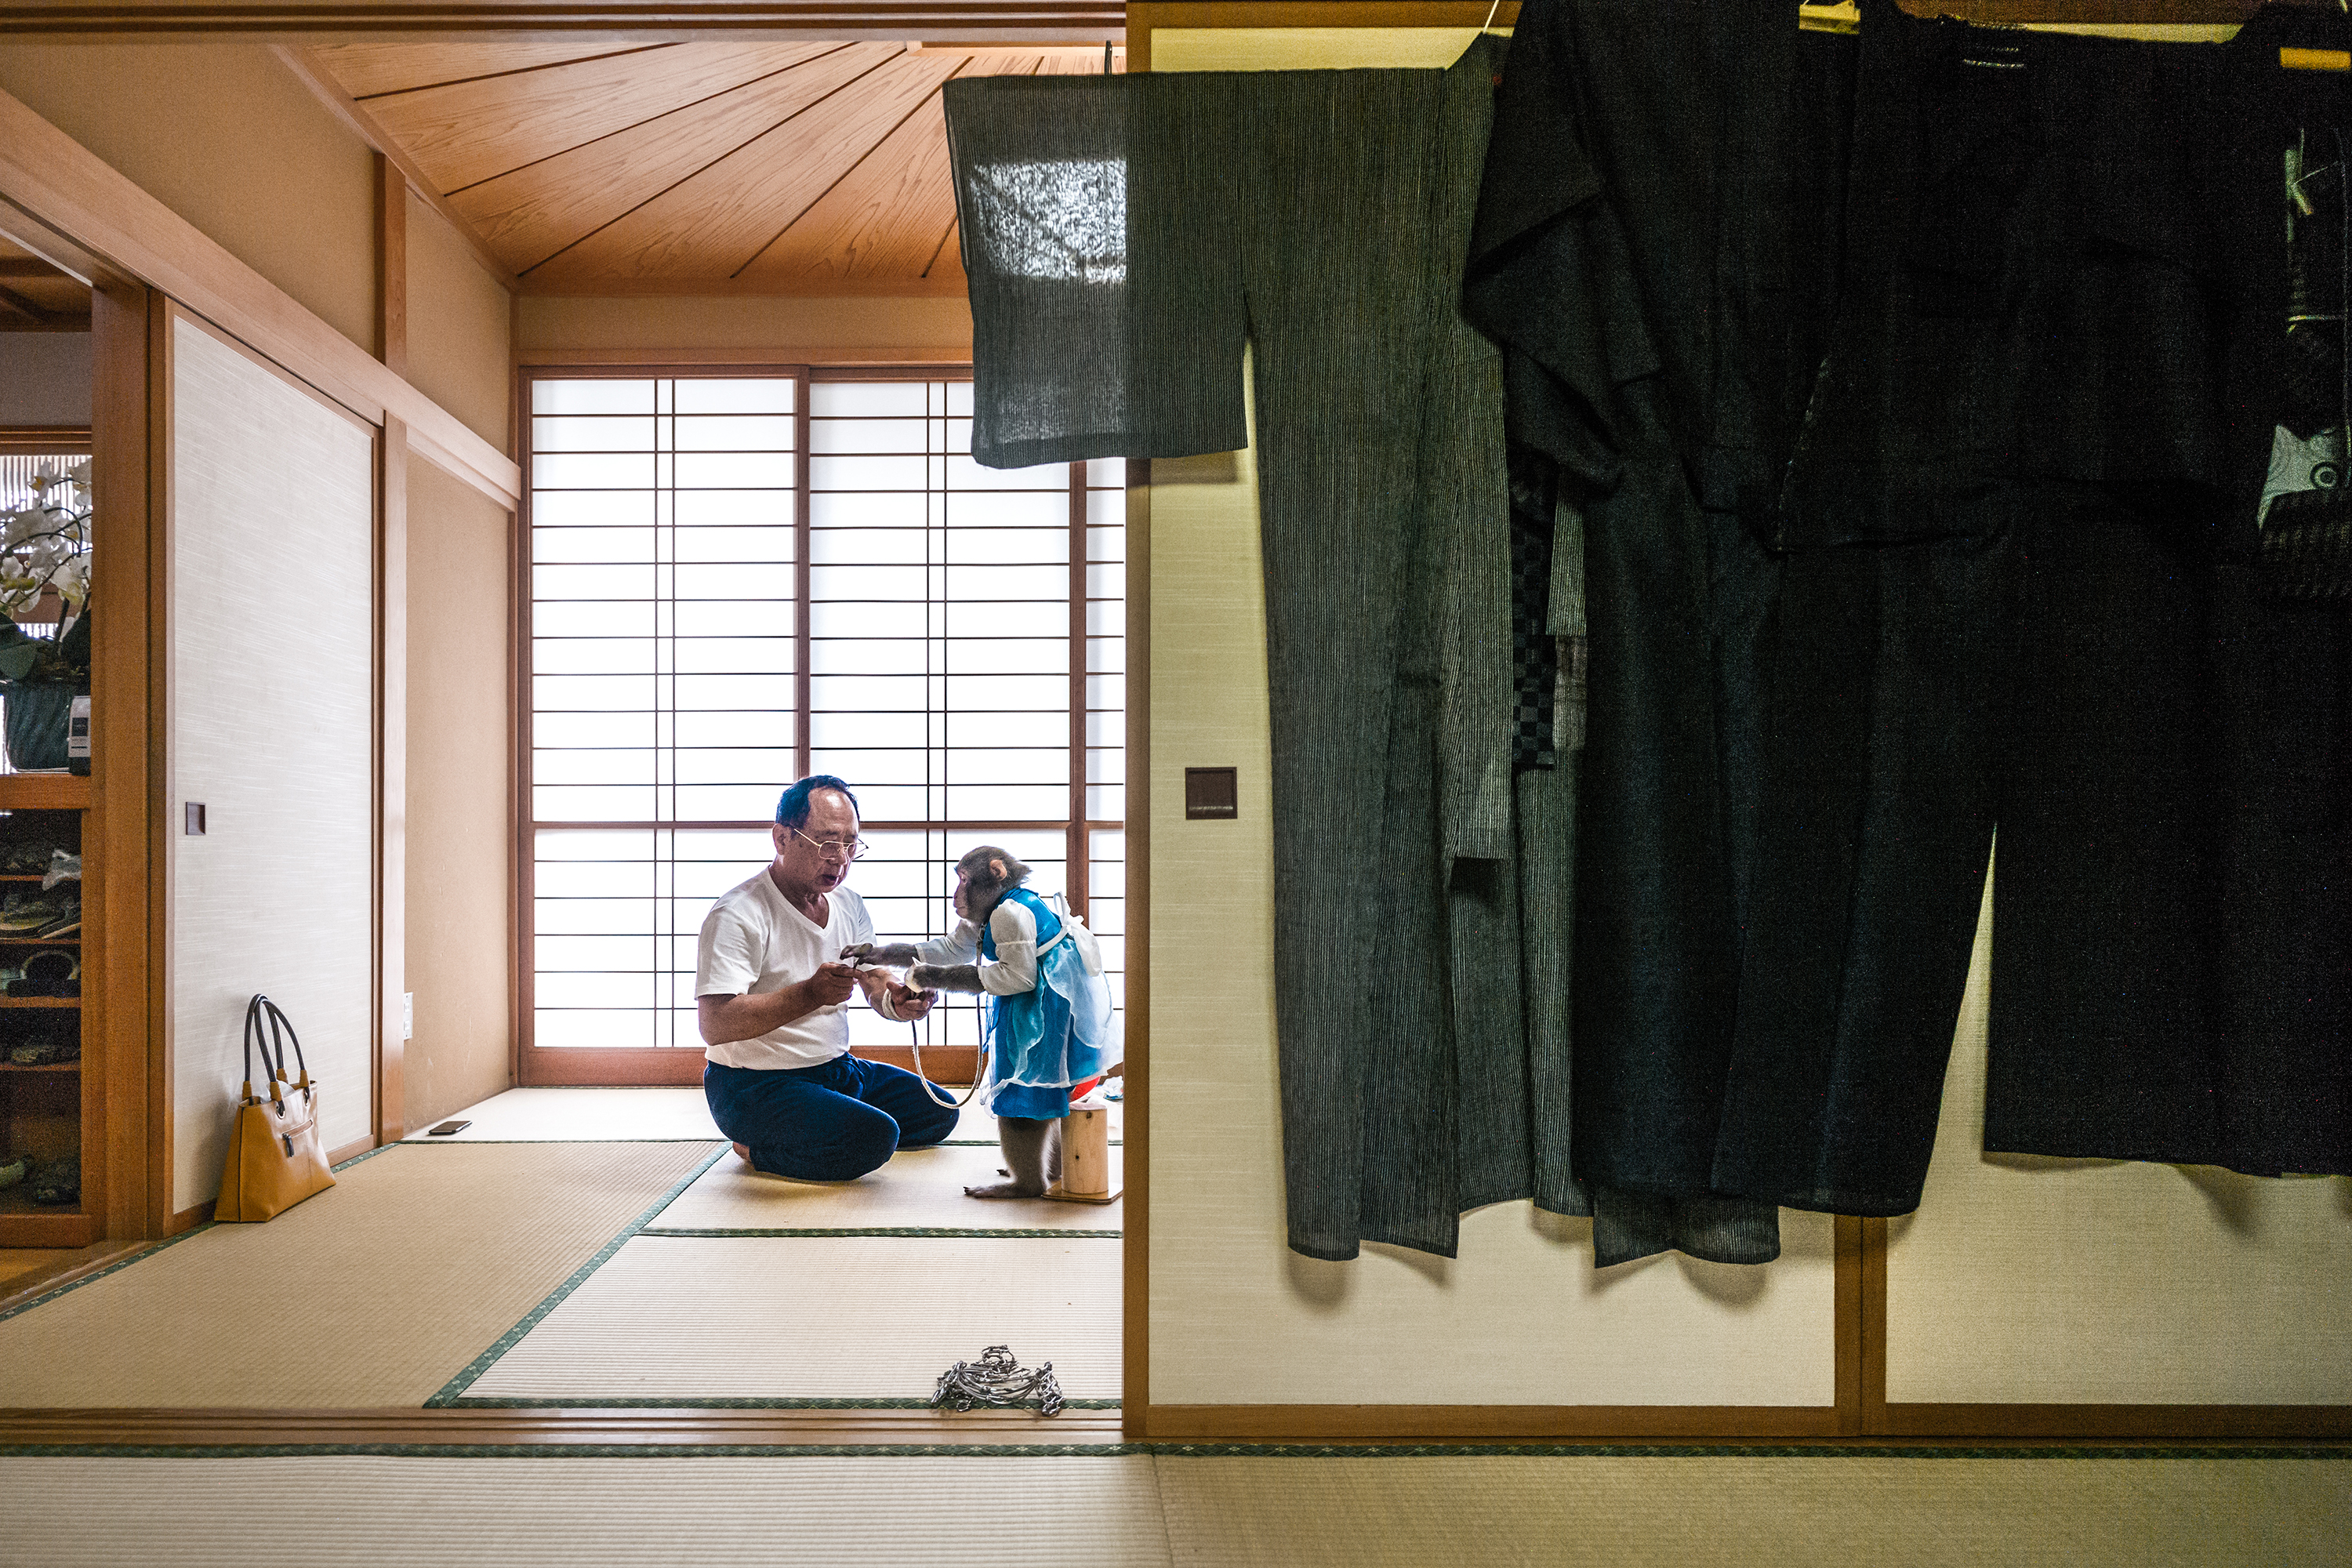 Kaoru Amagai shares his home in Ōta-shi, Gunma, central Japan, with three macaques, which he treats as he would children.